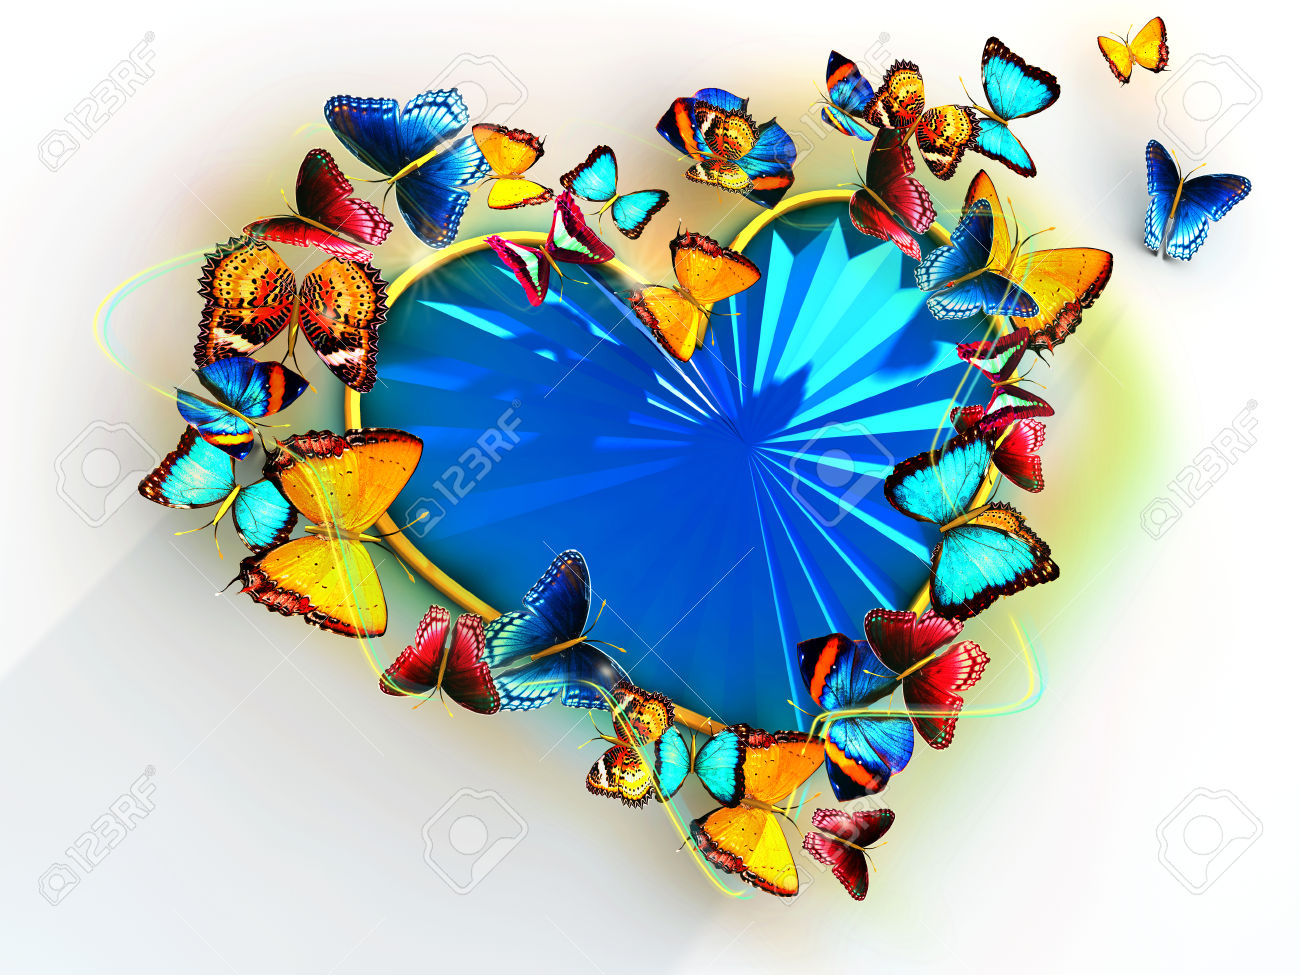 Multicolored Butterflies Flit Around The Heart As A Precious.